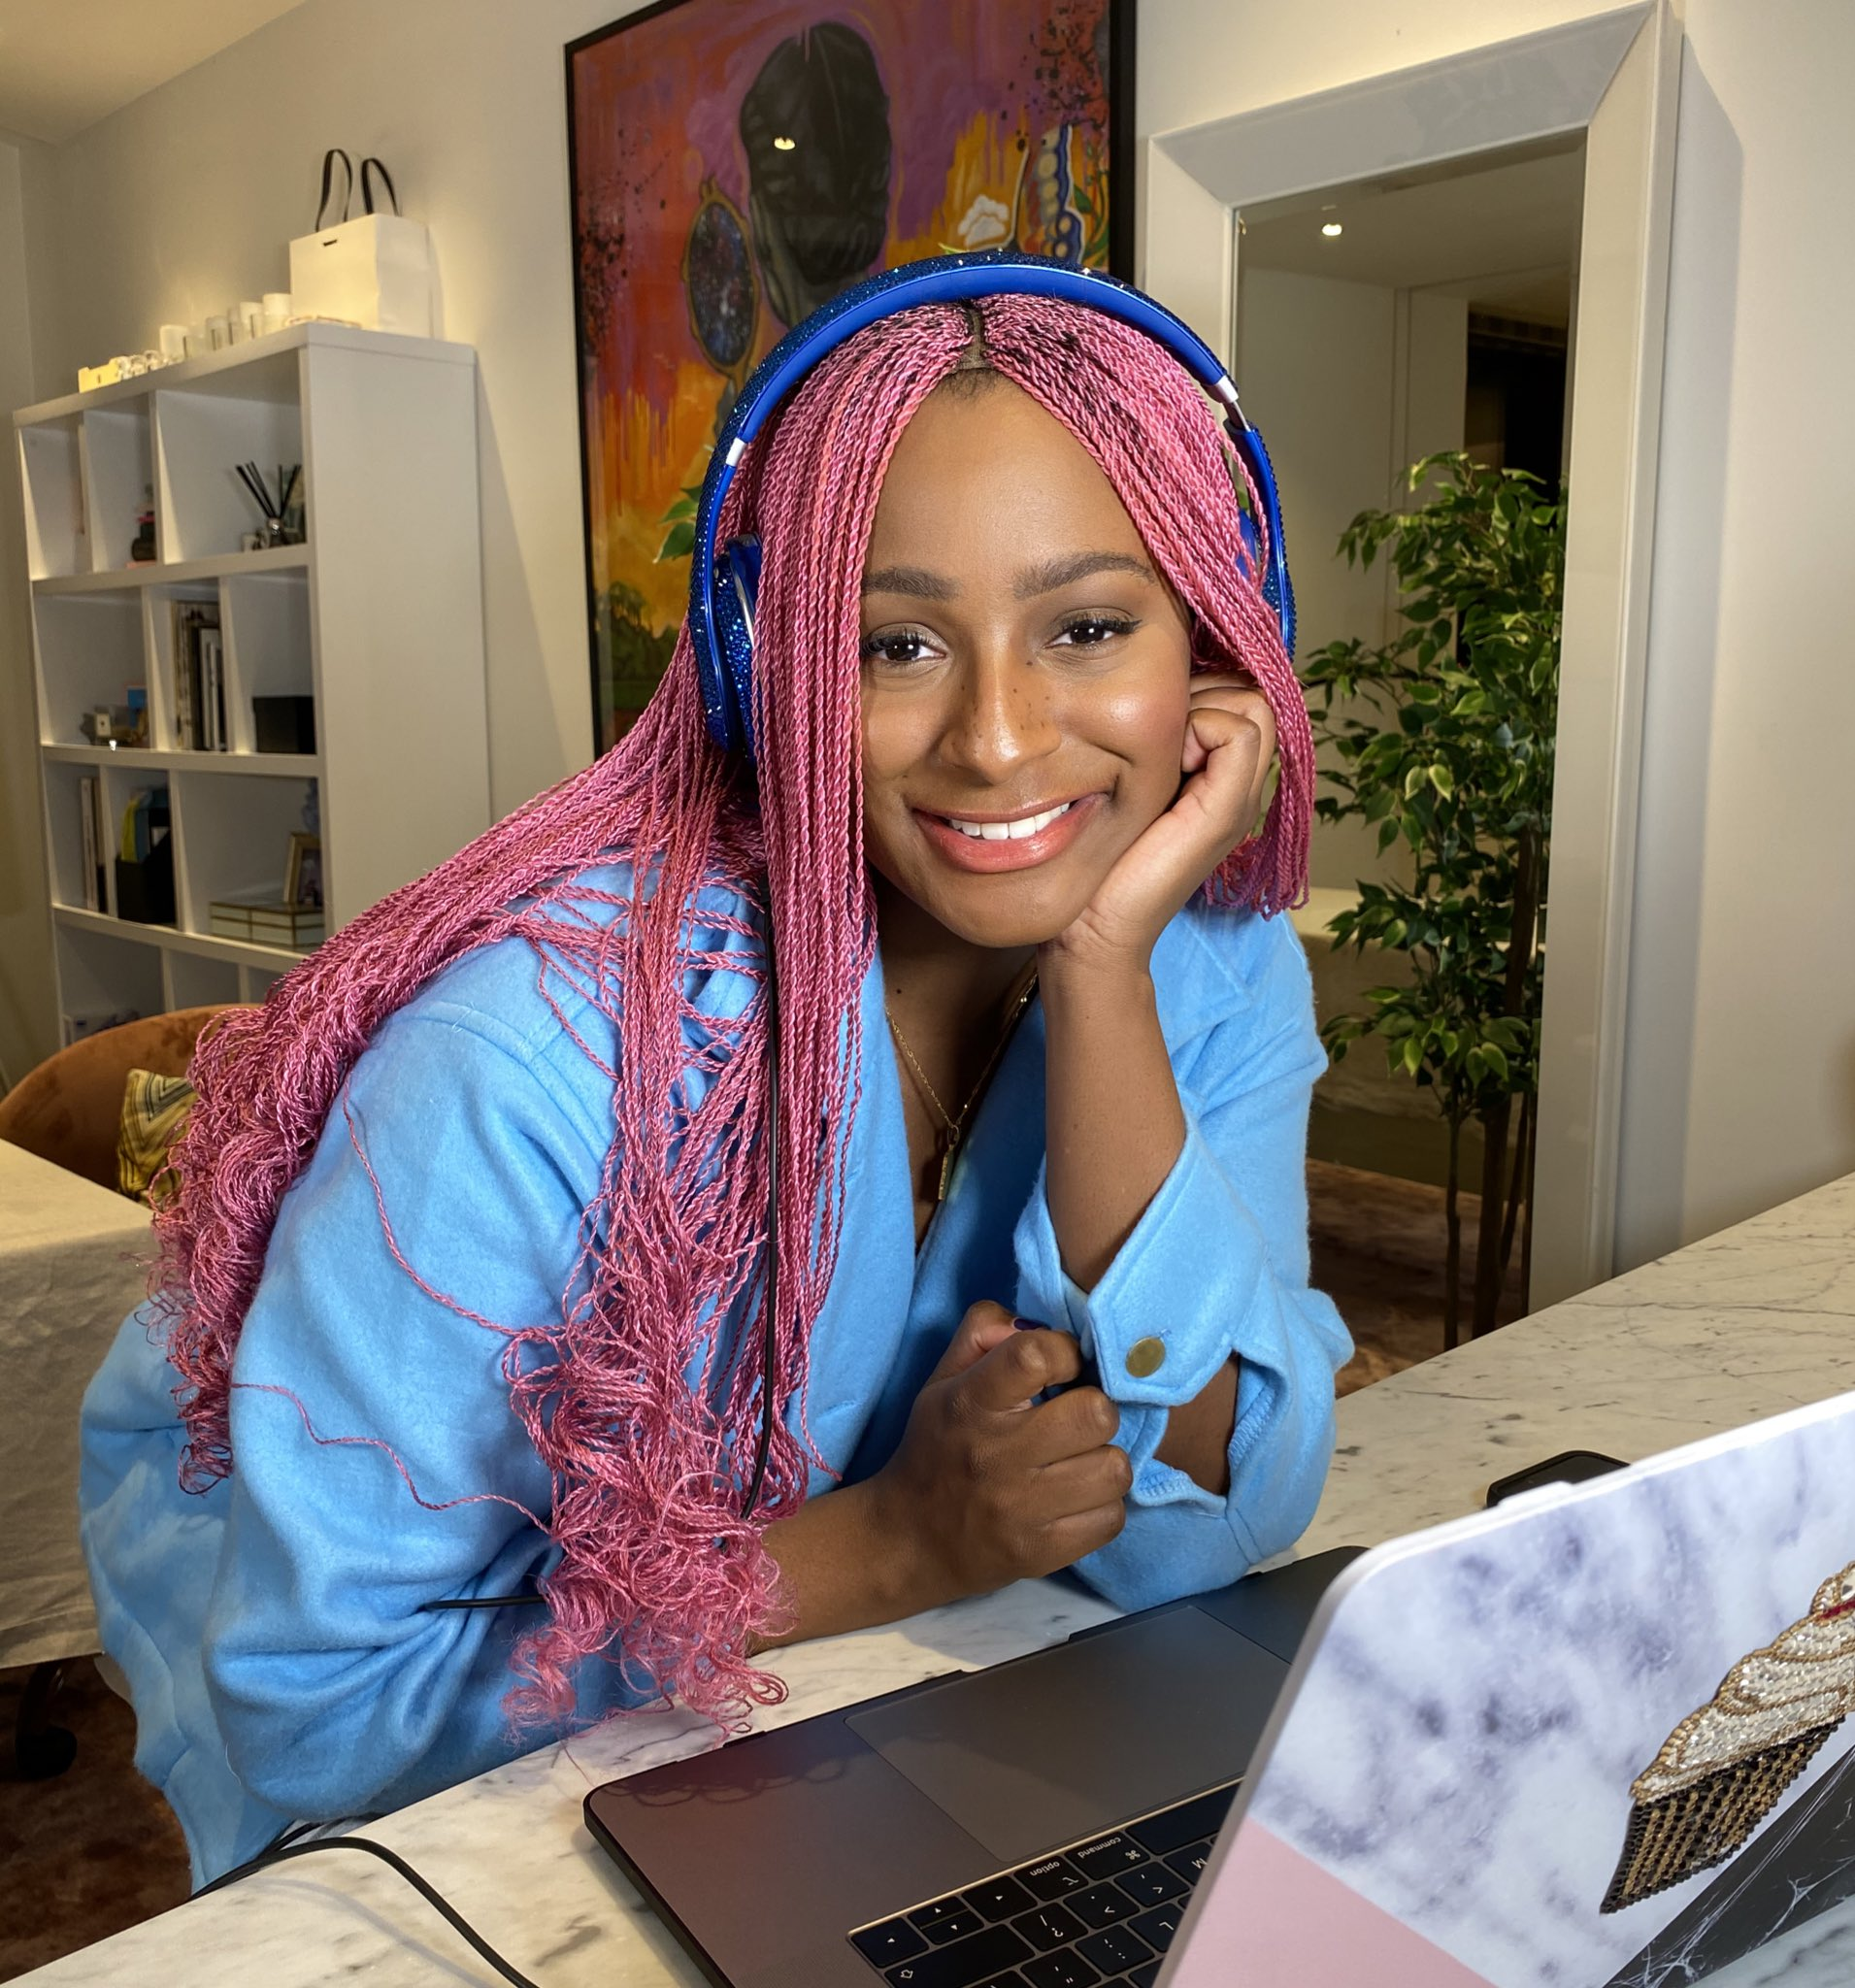 DJ Cuppy alert future husband of her bad cooking – shares photo of plantain she fried